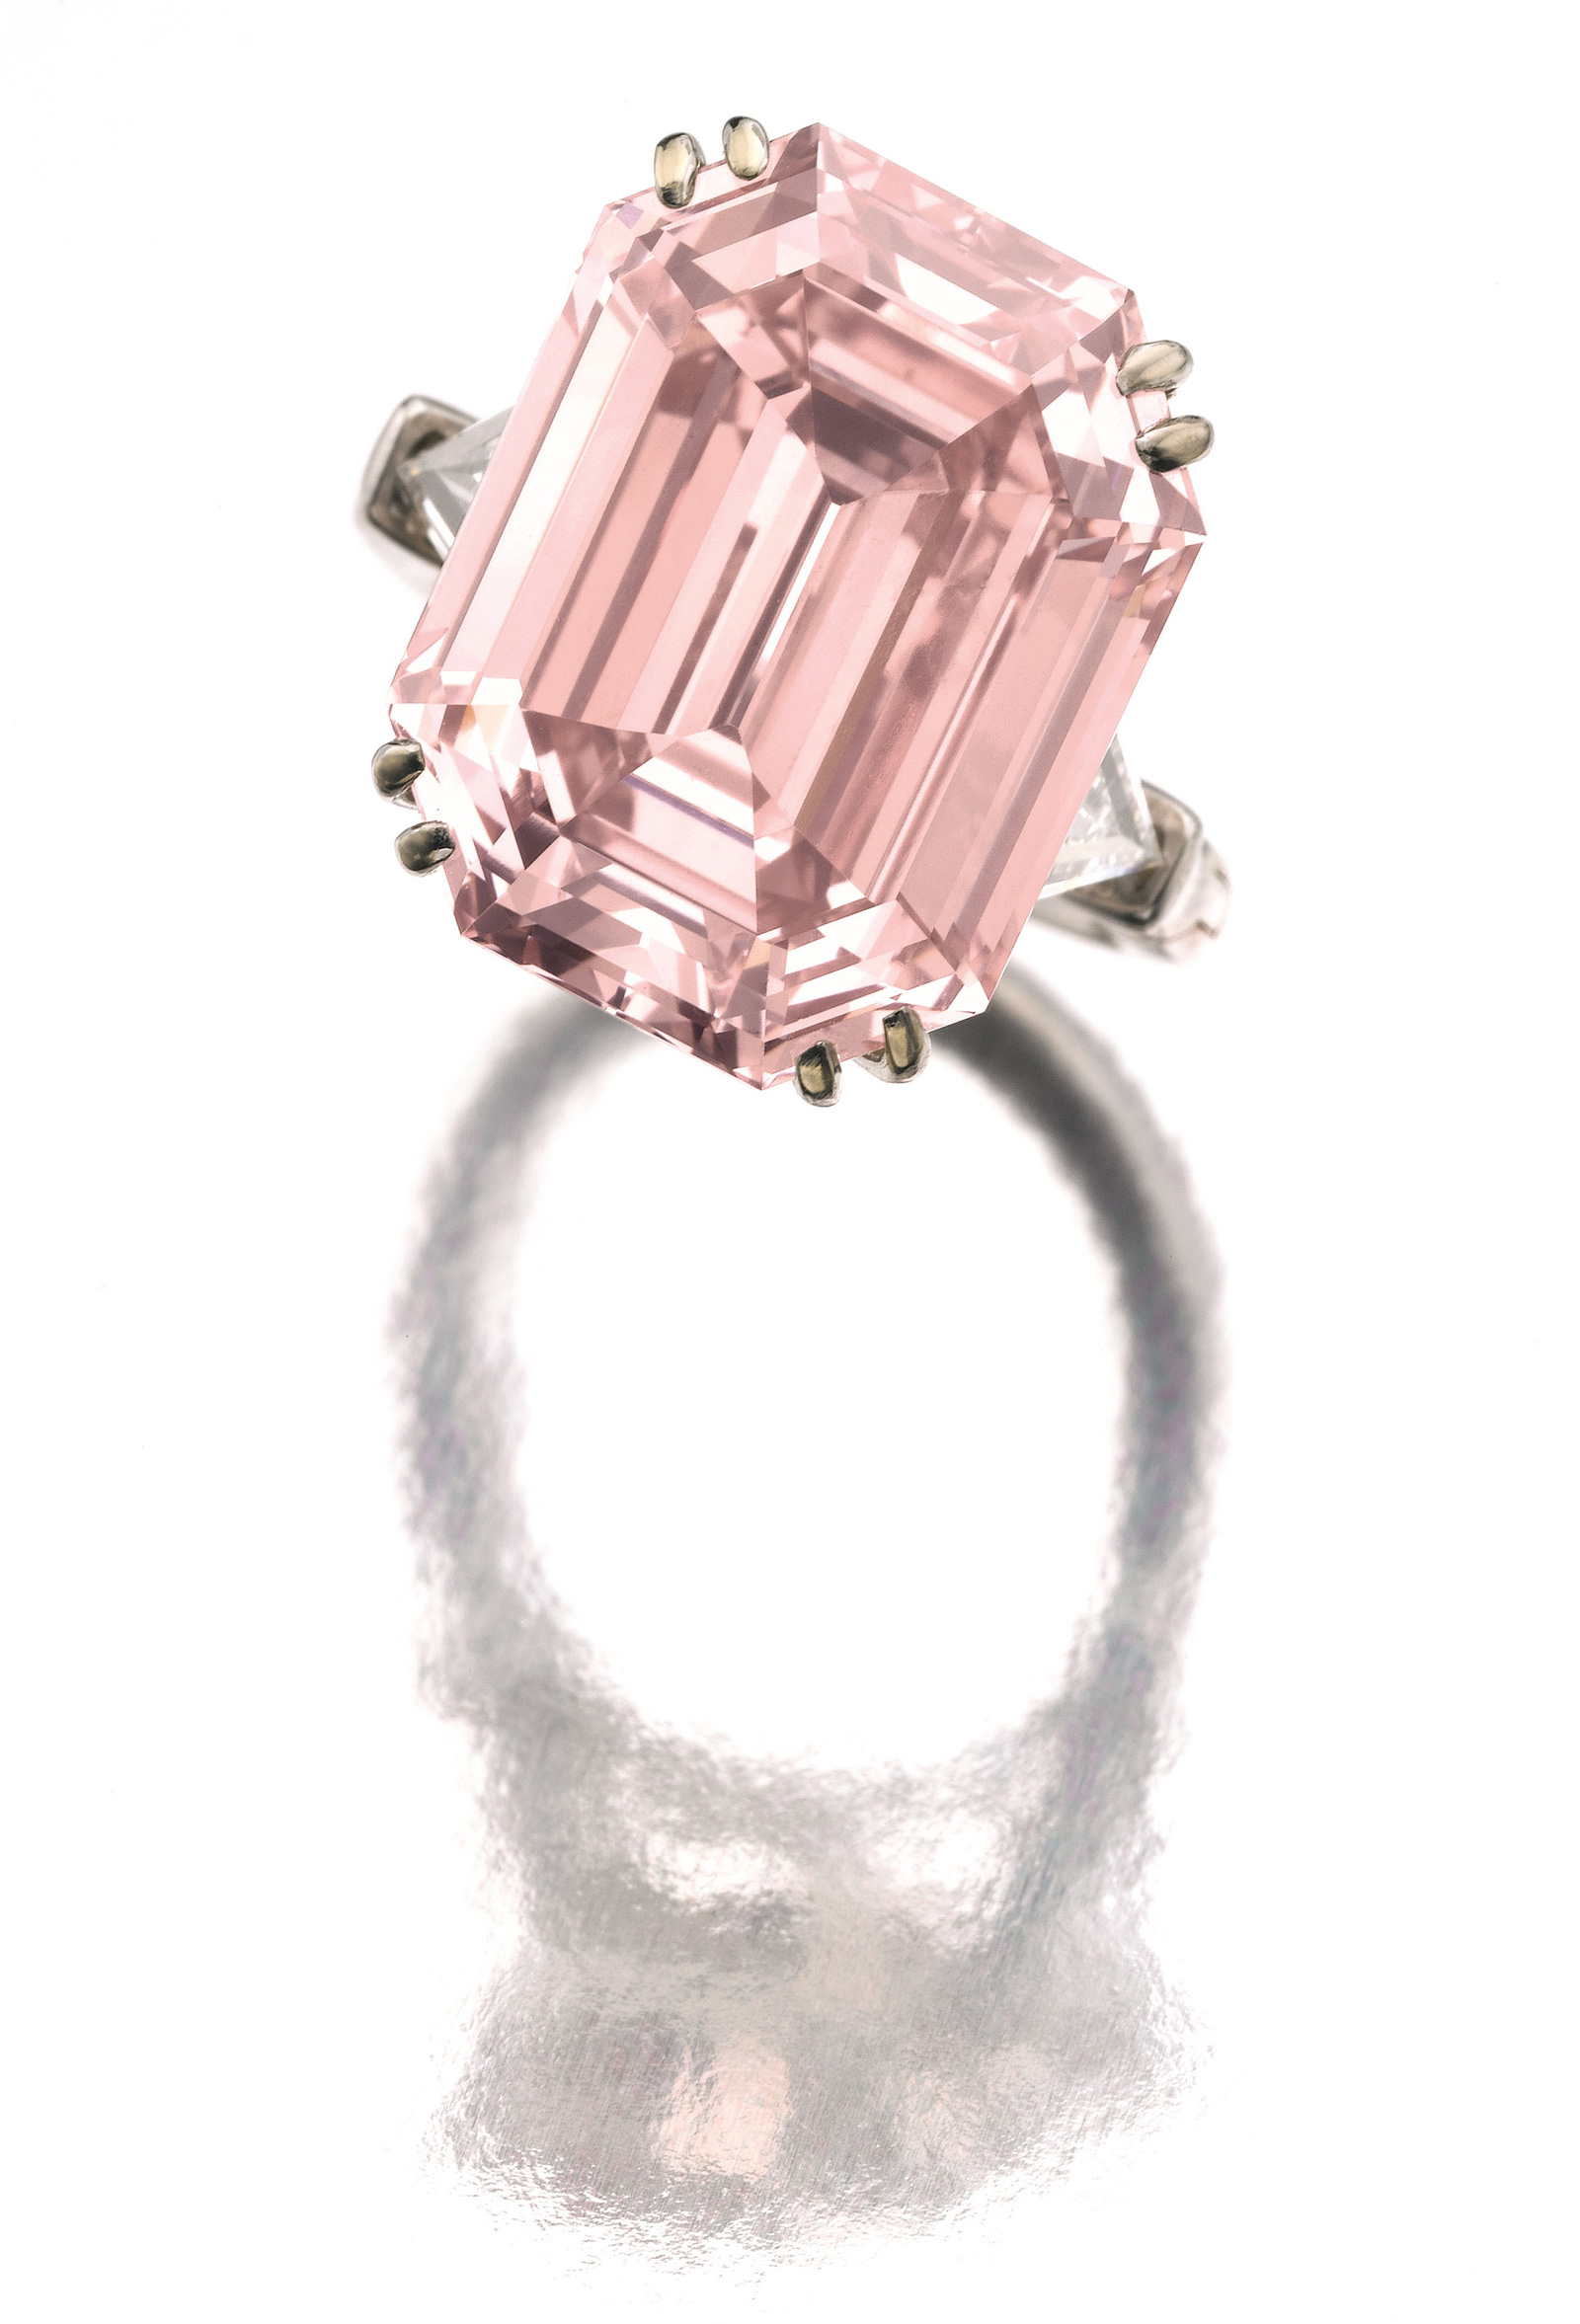 10.99 Carat Rare Pink Diamond At Sotheby's Geneva